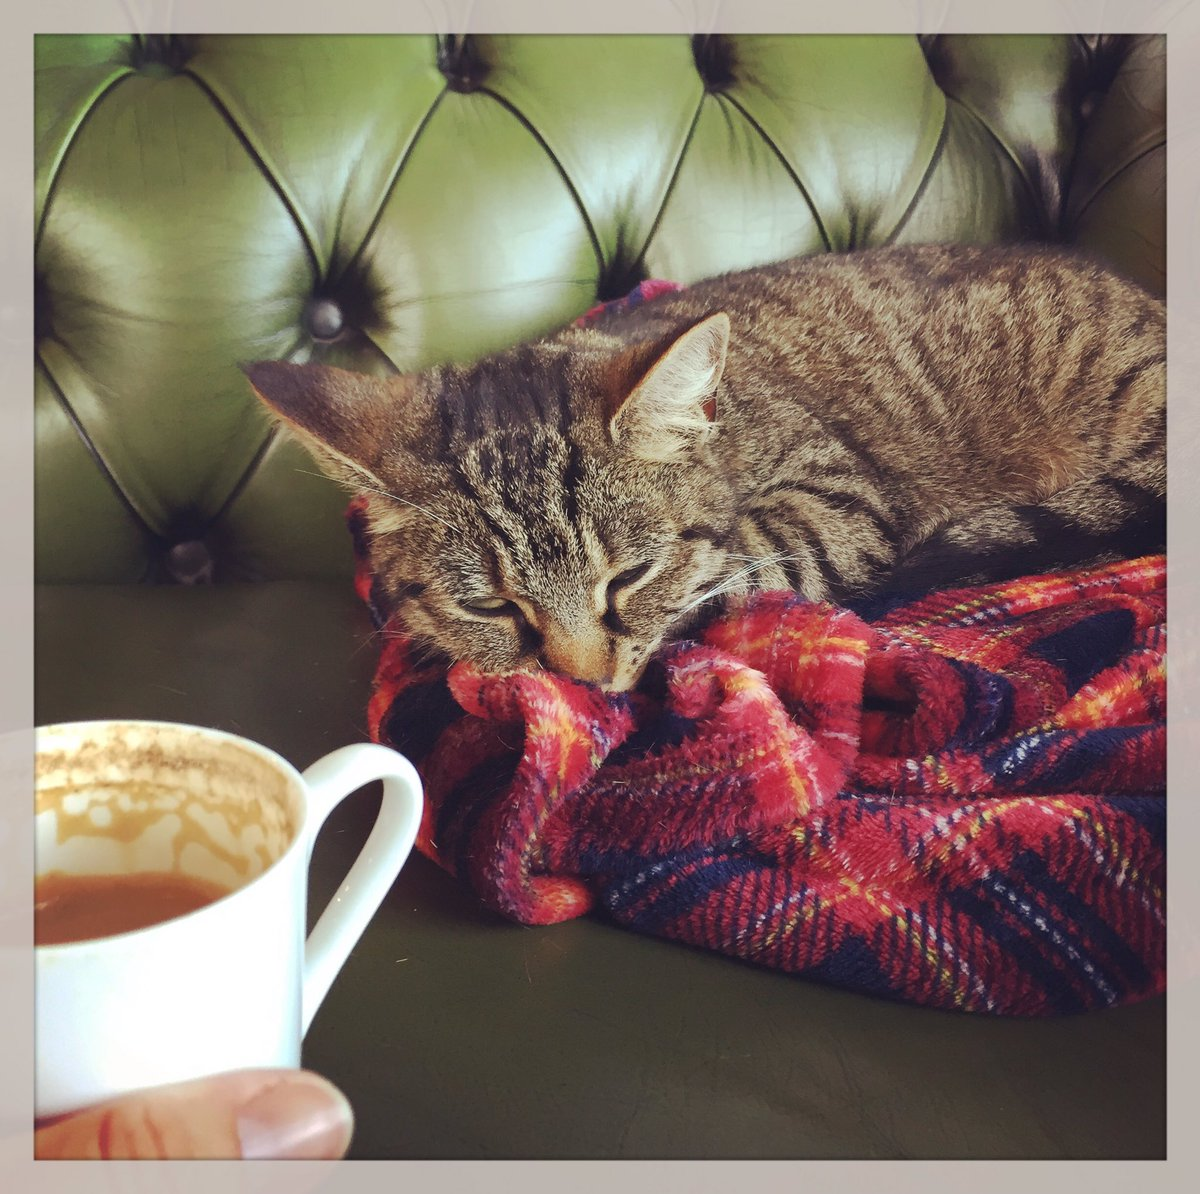 Morning! A cat and a good coffee, what else could you ask for? #cheltenham #local #barista #coffee #morning #cat #cuddles #blanket <br>http://pic.twitter.com/8b1xQOMwru